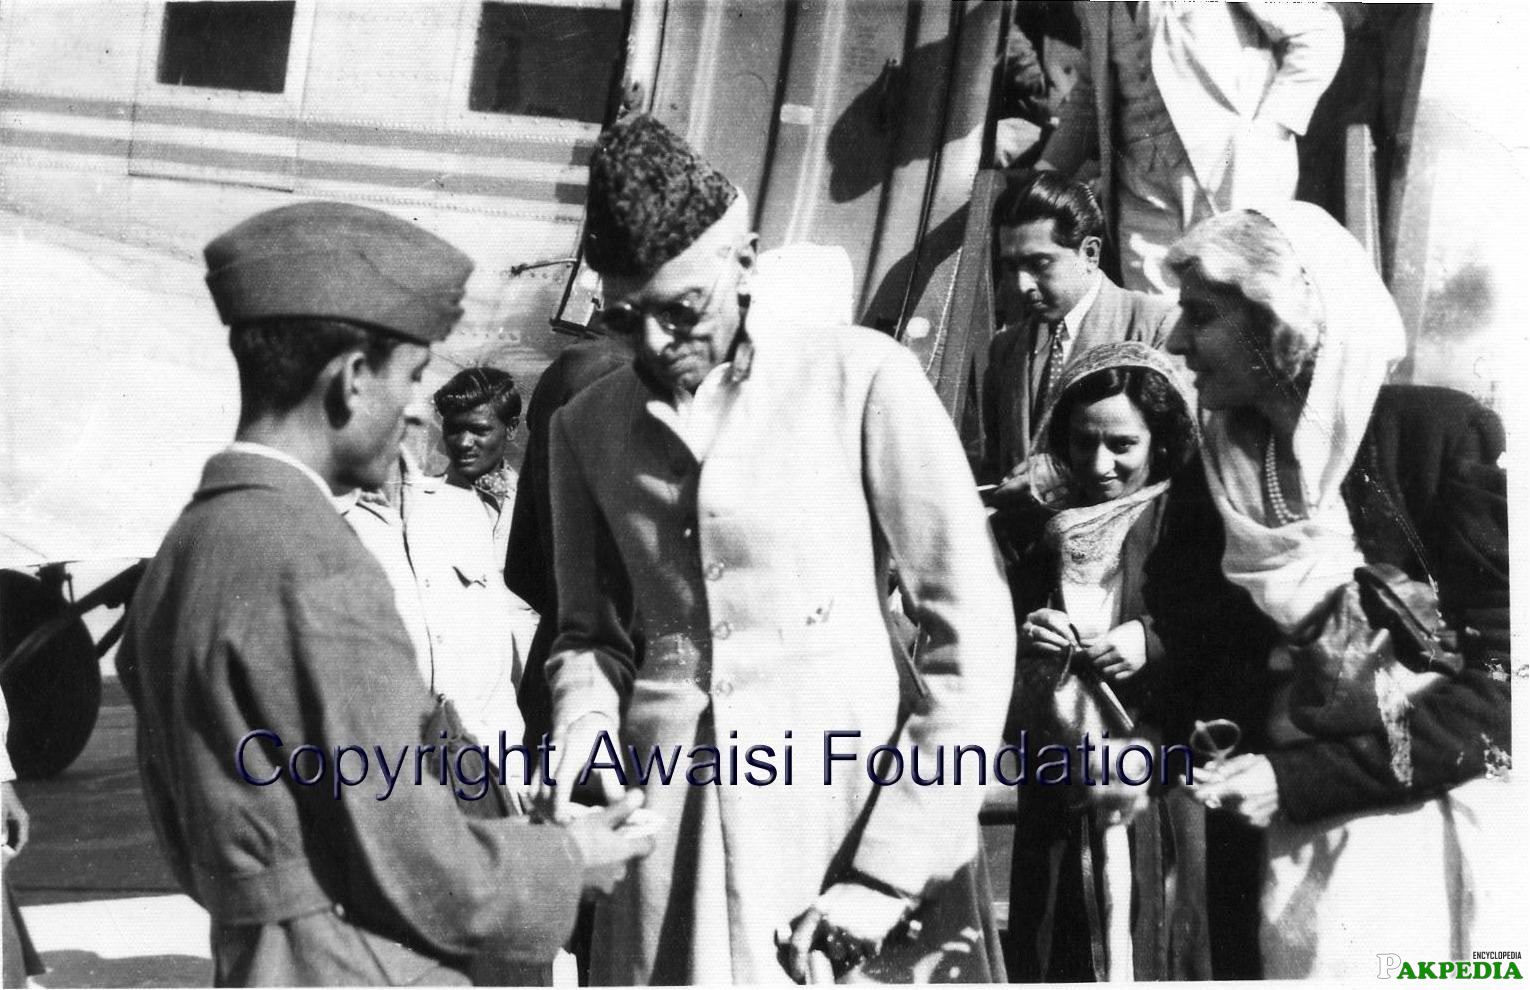 Quaid-e-Azam being received by PAF officer at [url=https://www.pakpedia.pk/doc/Lahore]Lahore[/url] Airport